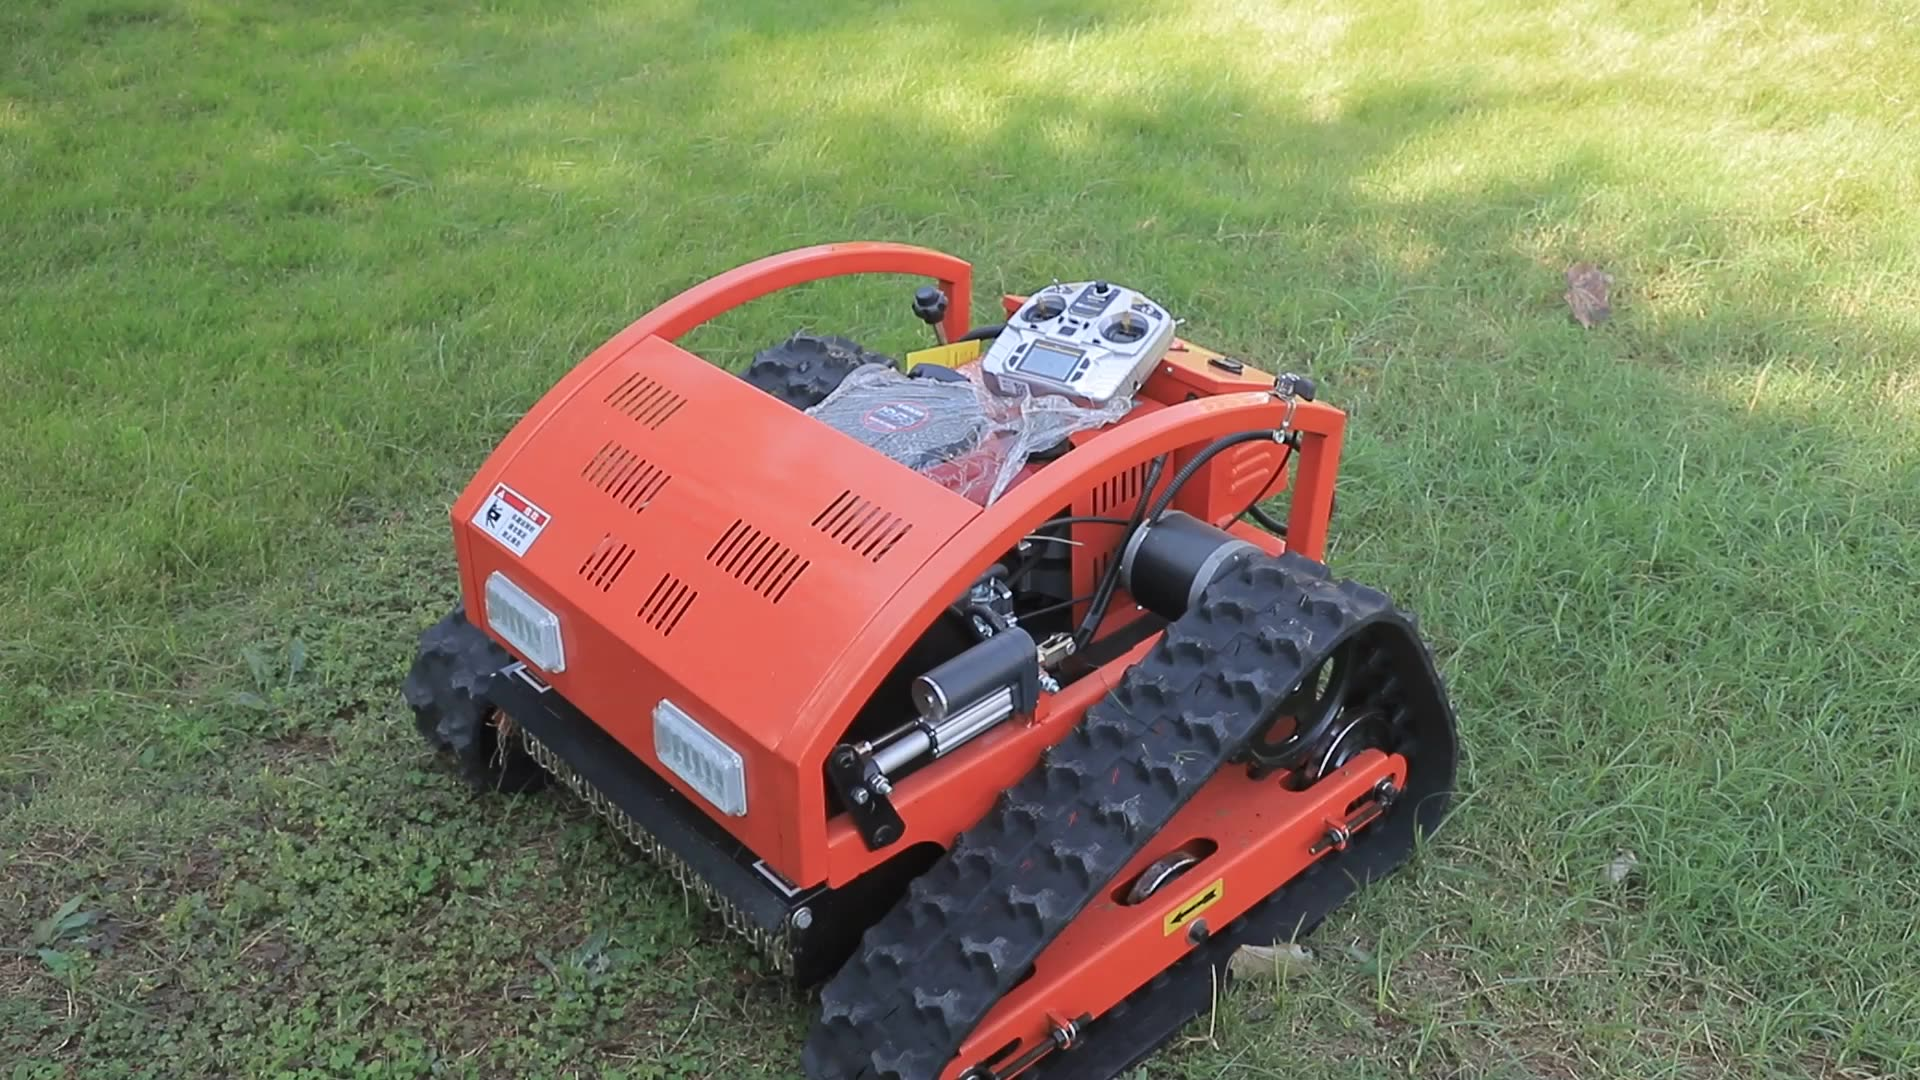 rubber crawler robot Gasoline Self Propelled Garden rc Lawn Mower for sale